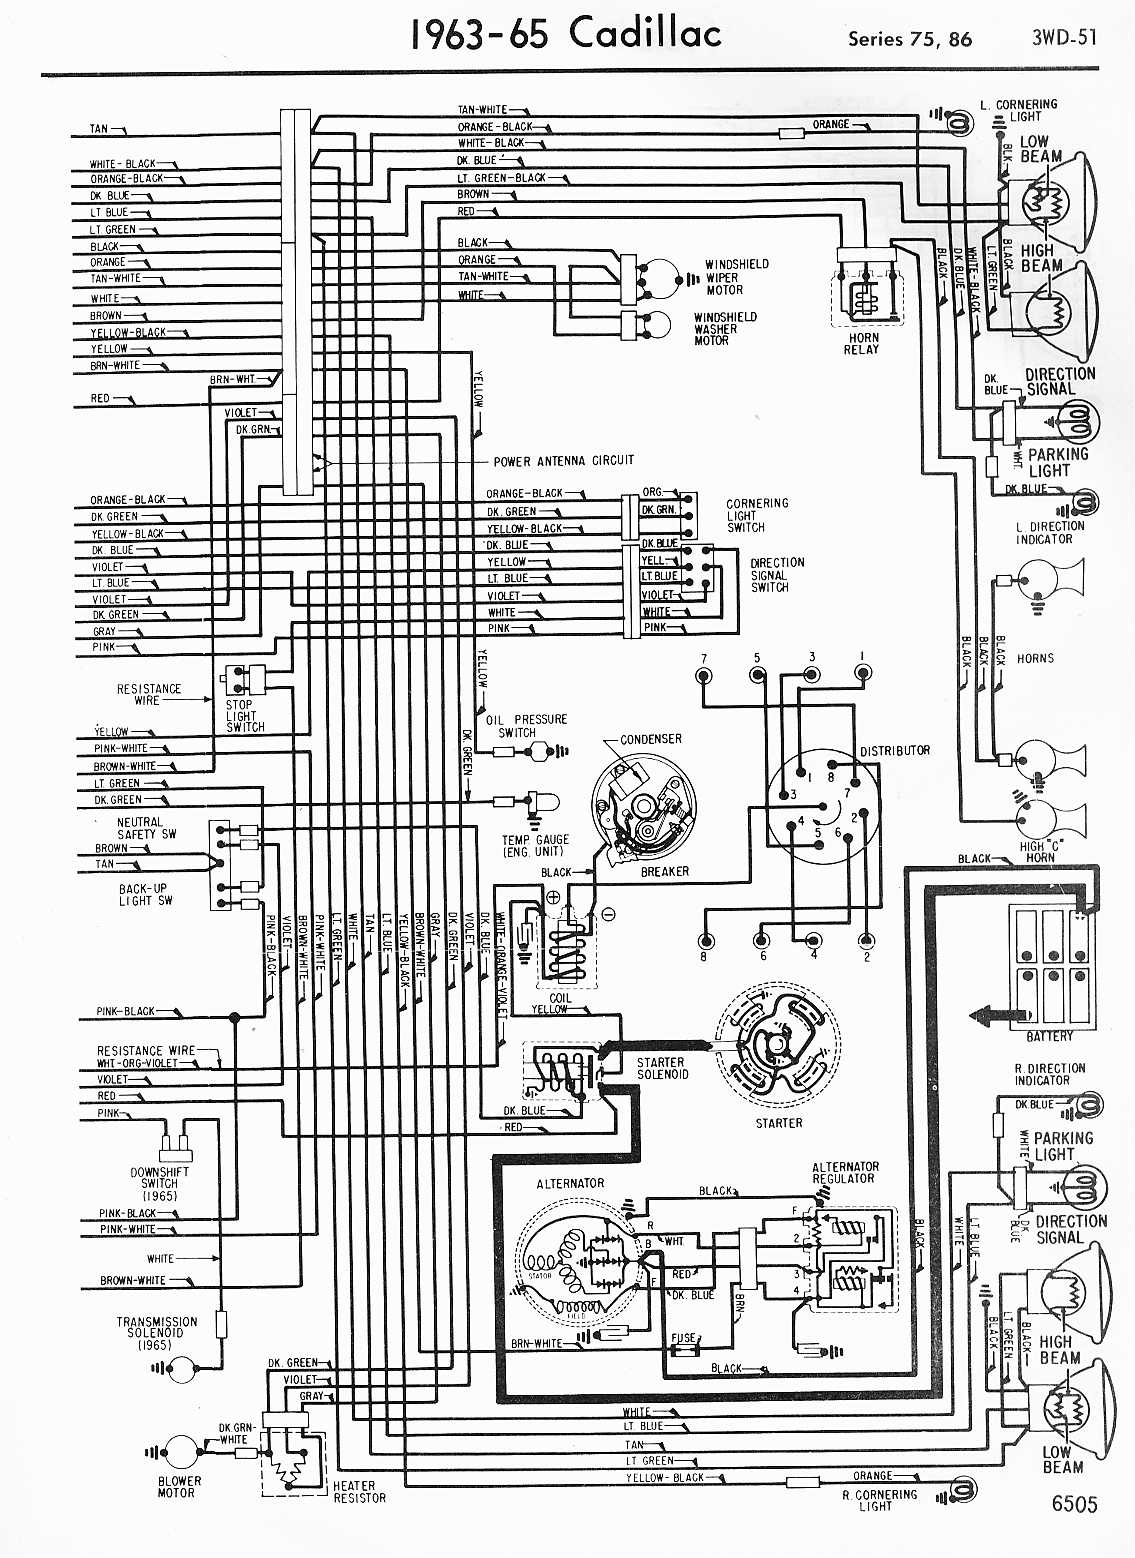 Alternator Wiring Diagram On 1957 Cadillac Fleetwood 75 W With Current Limiting Circuit Tradeoficcom Diagrams 1965 Rh Oldcarmanualproject Com